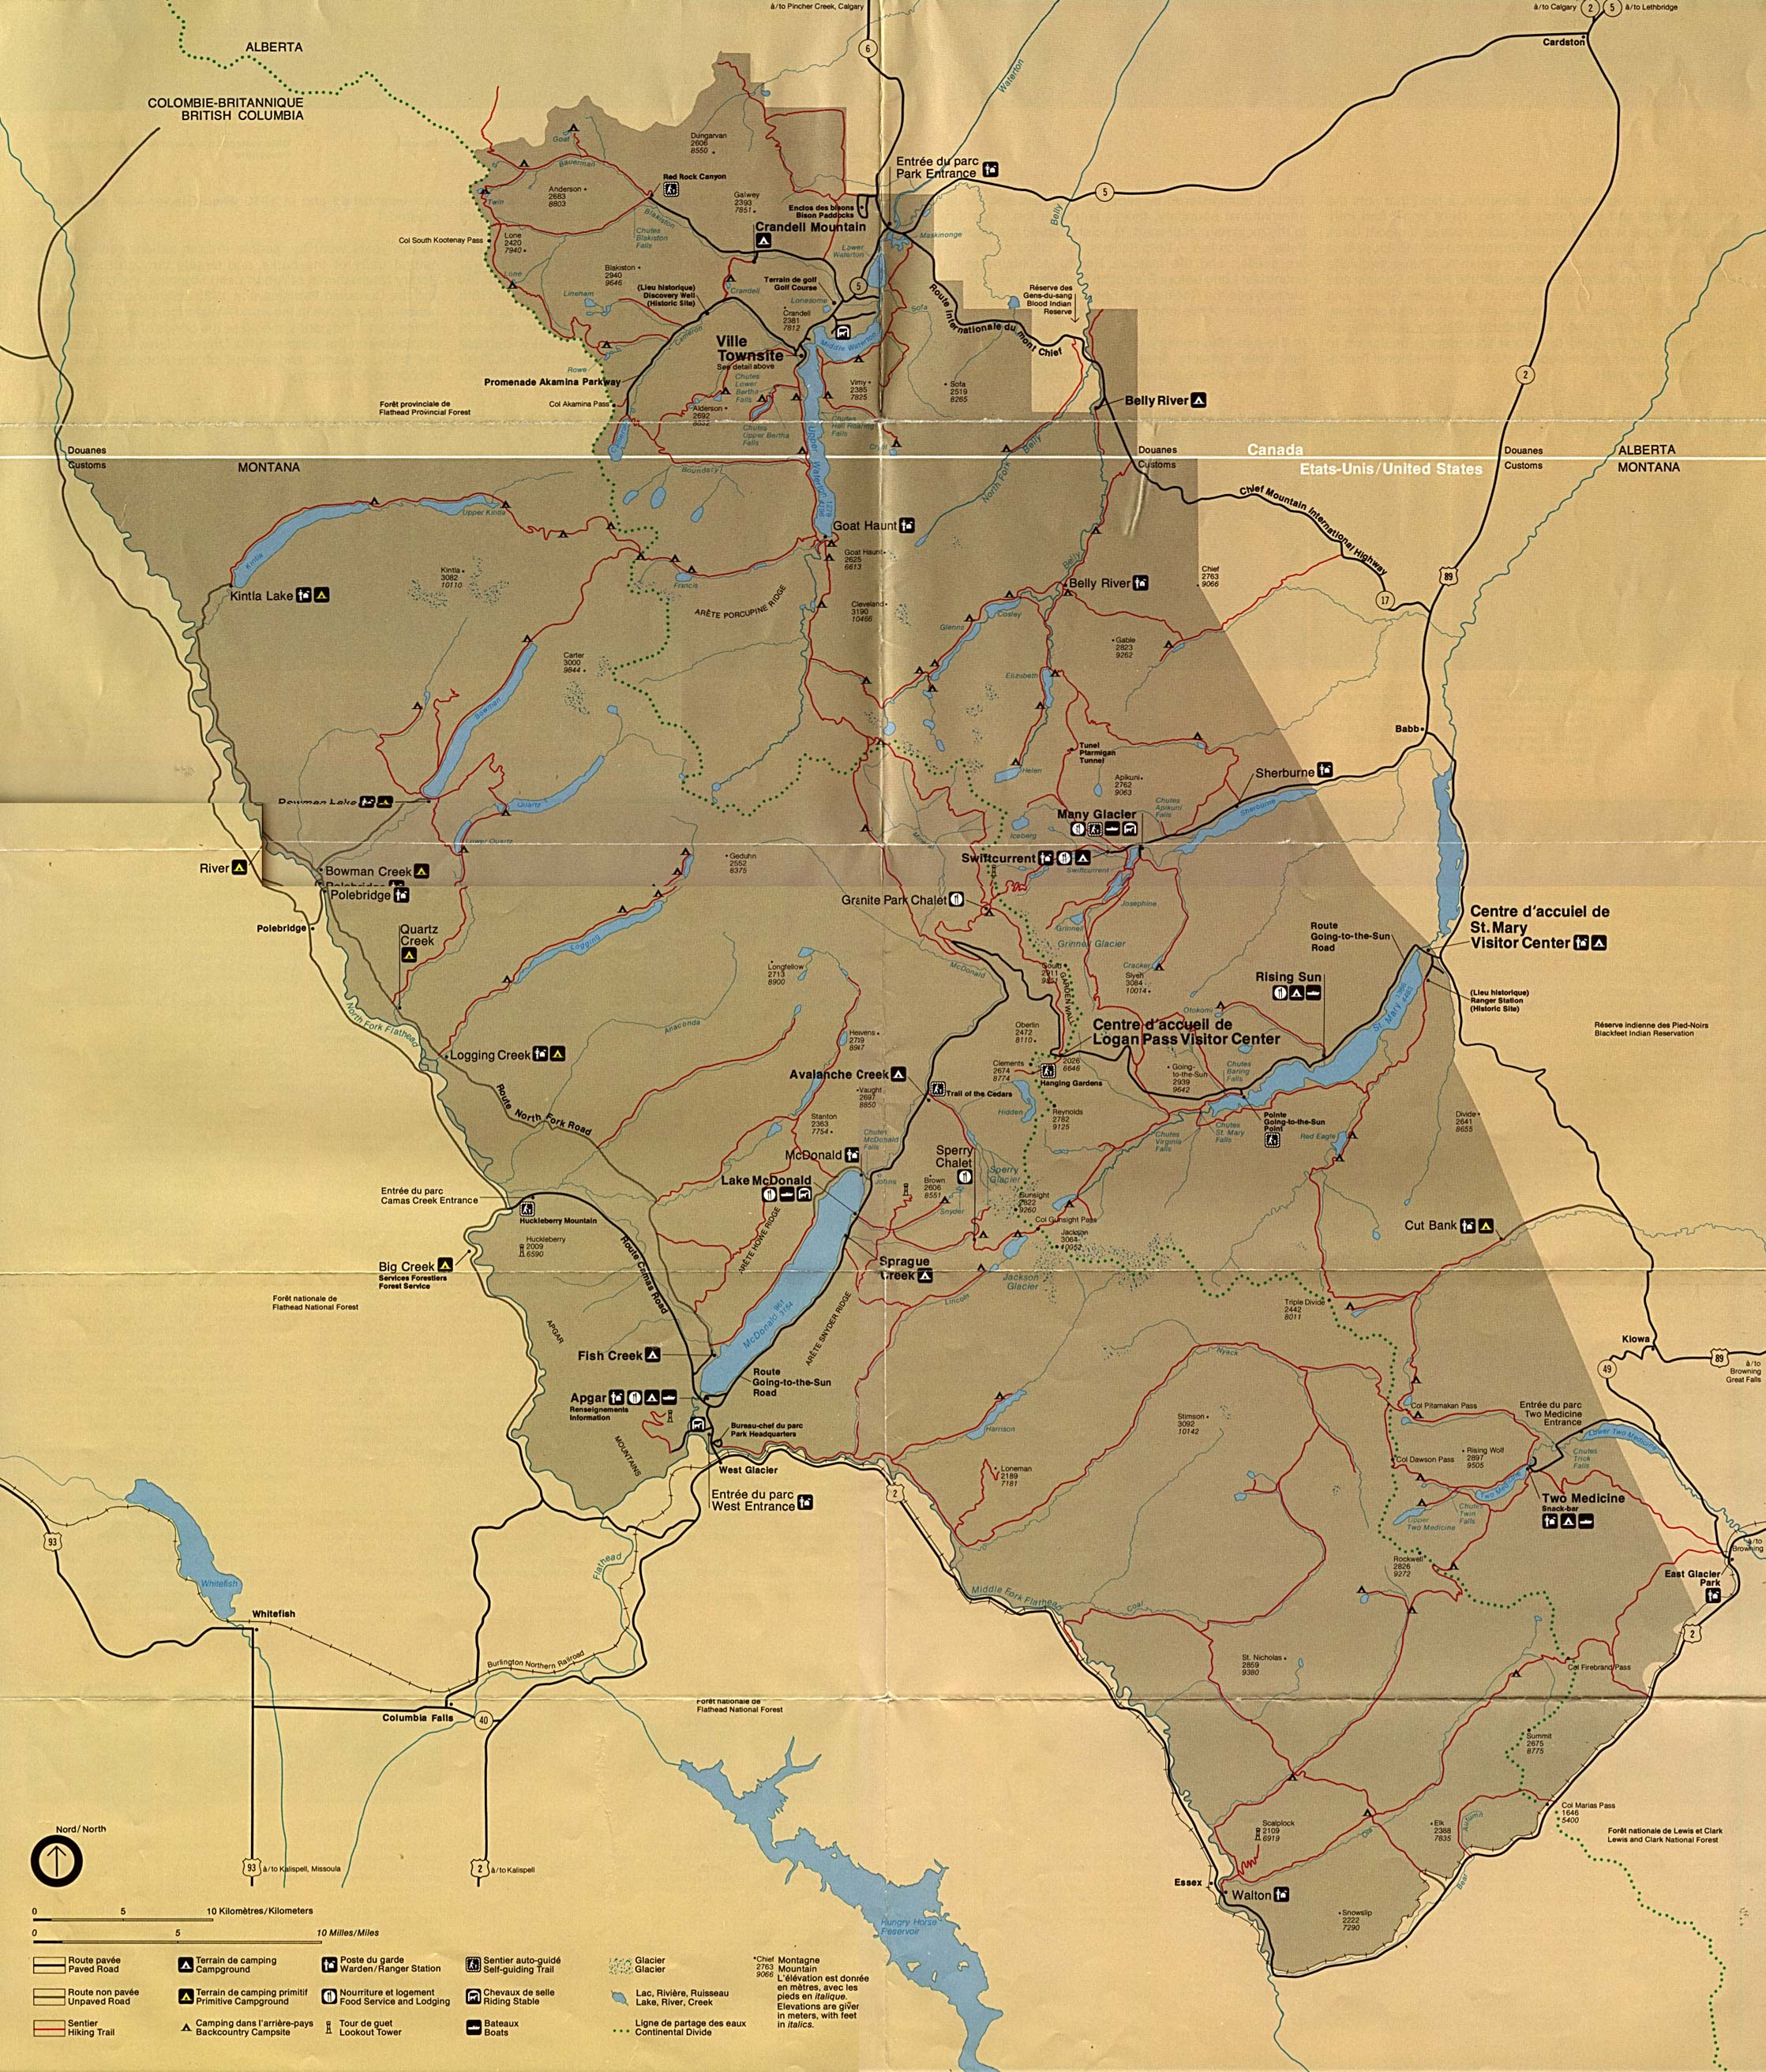 1up travel maps of united states us national parks monuments maps of united states national parks monuments and historic sites waterton glacier international peace gumiabroncs Gallery